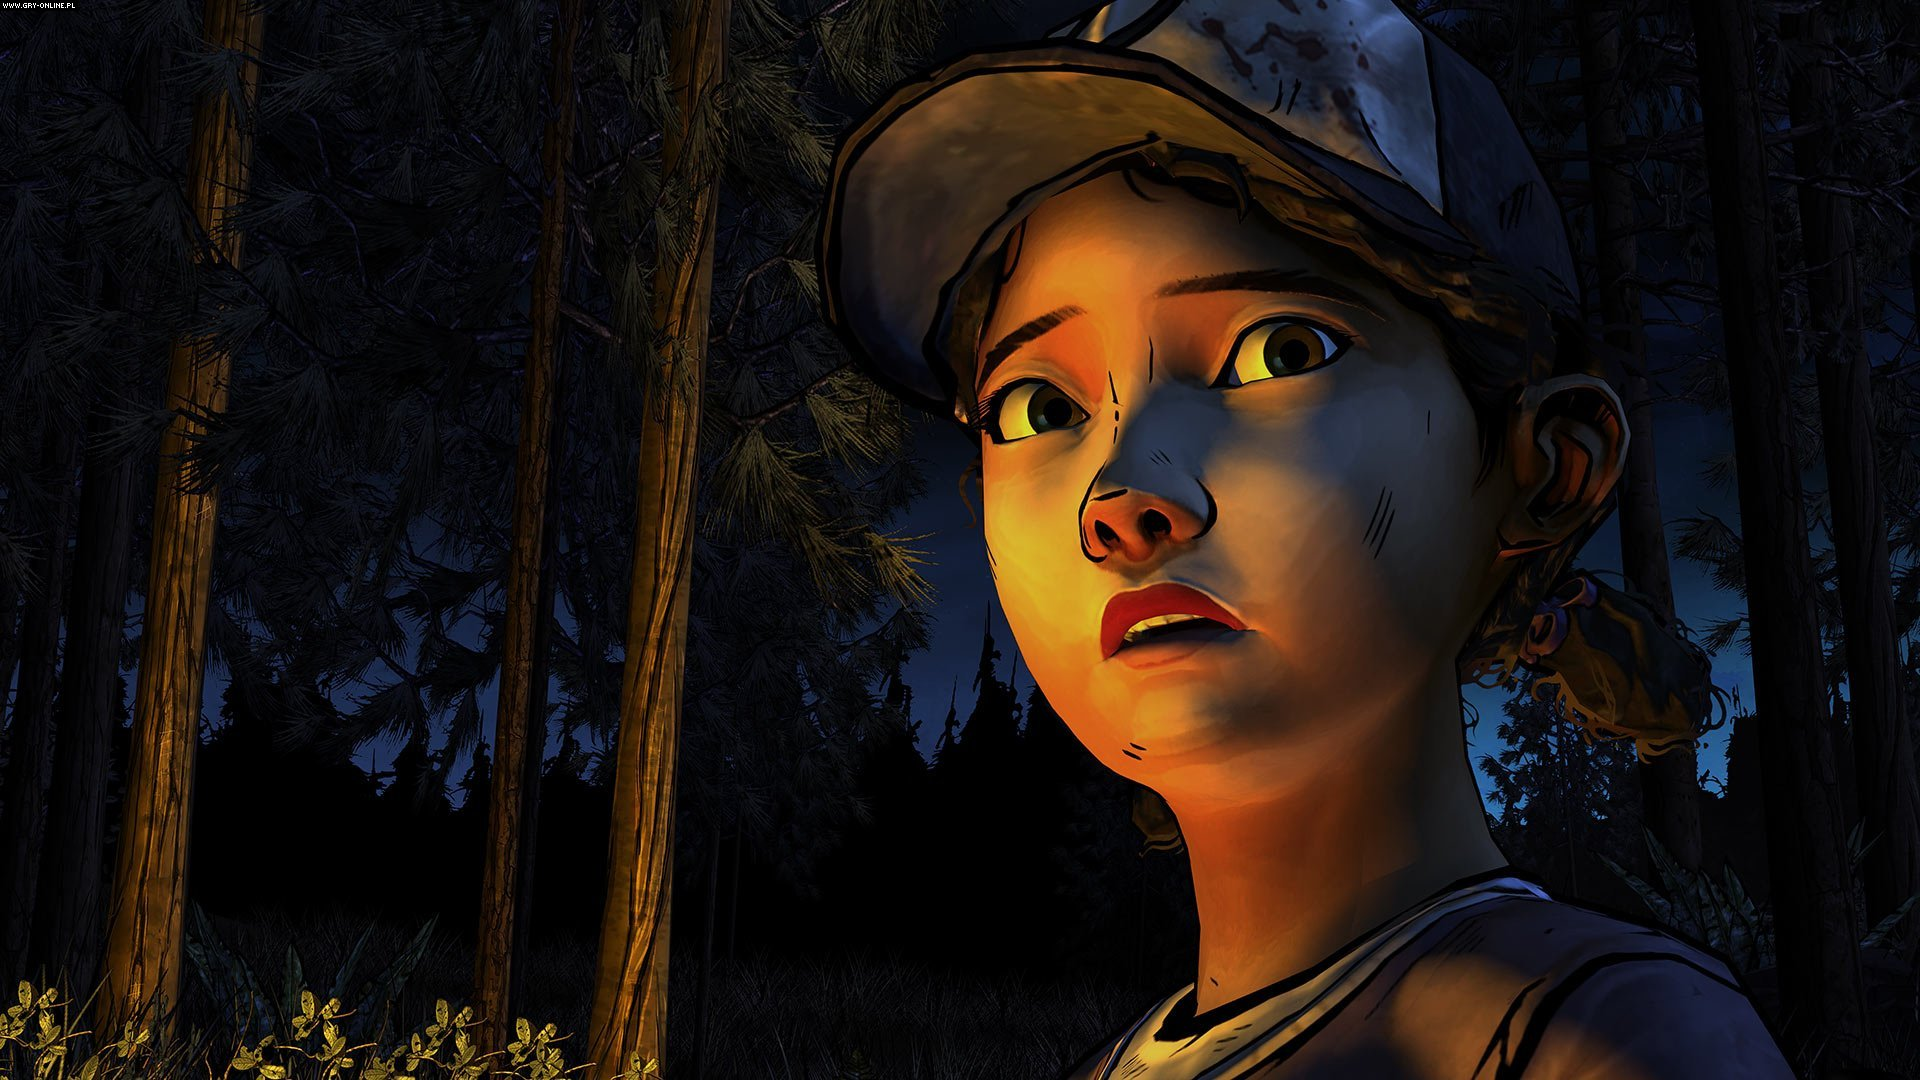 The Walking Dead: A Telltale Games Series - Season Two PC, X360, PS3, PSV, PS4, XONE, AND, iOS Gry Screen 11/12, Telltale Games